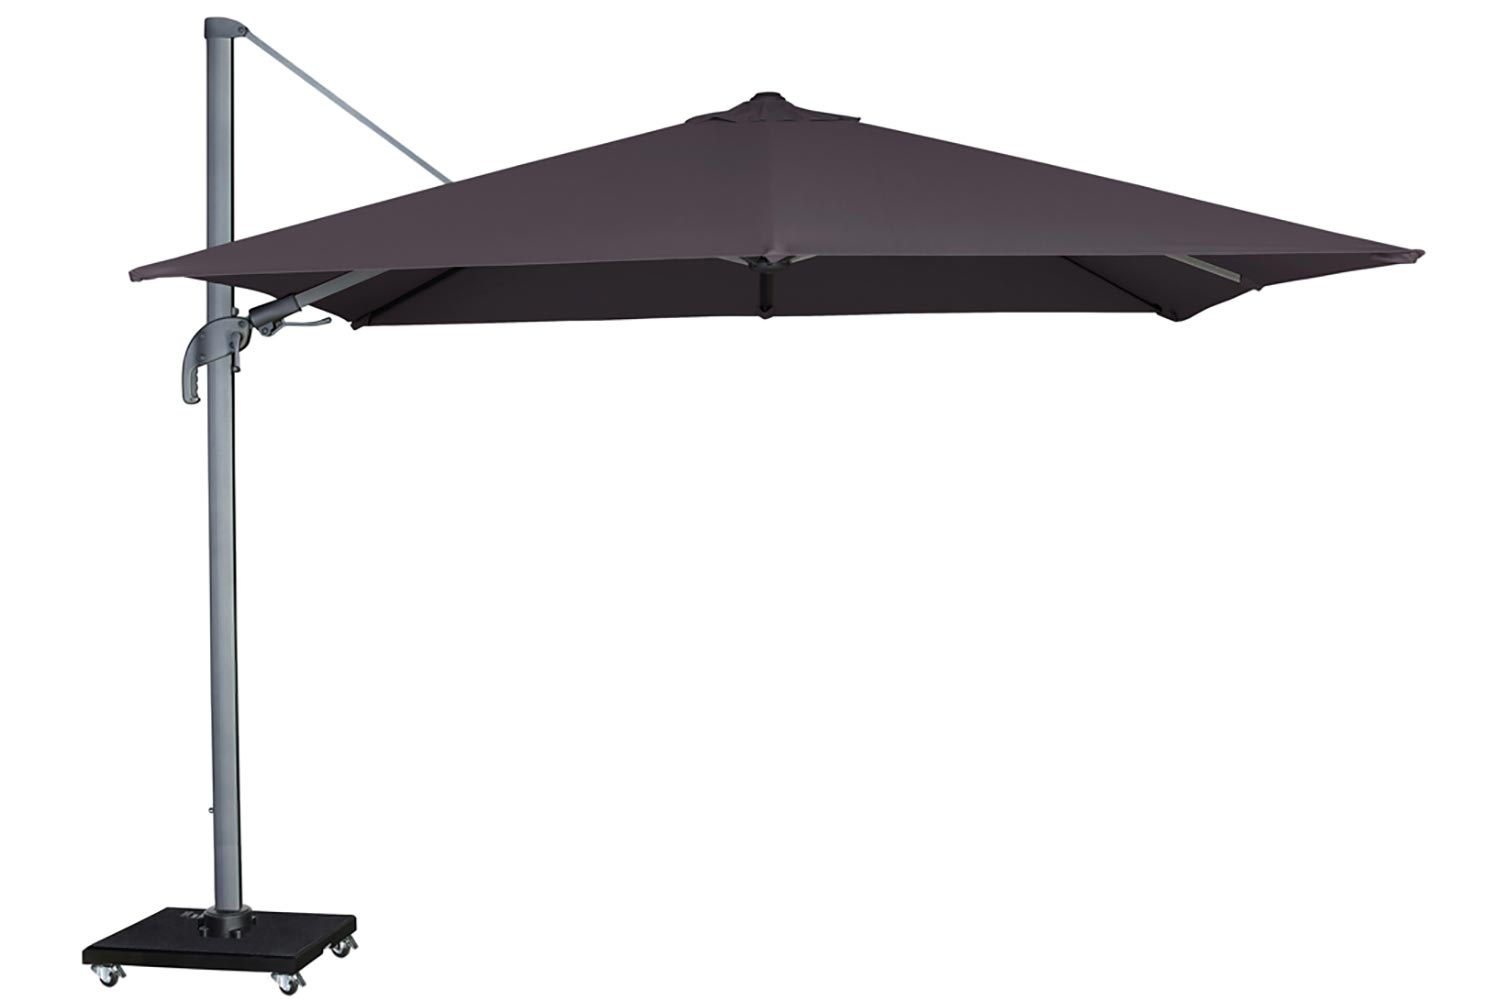 Garden Collections Alegria zweefparasol 300 x 300 antracite